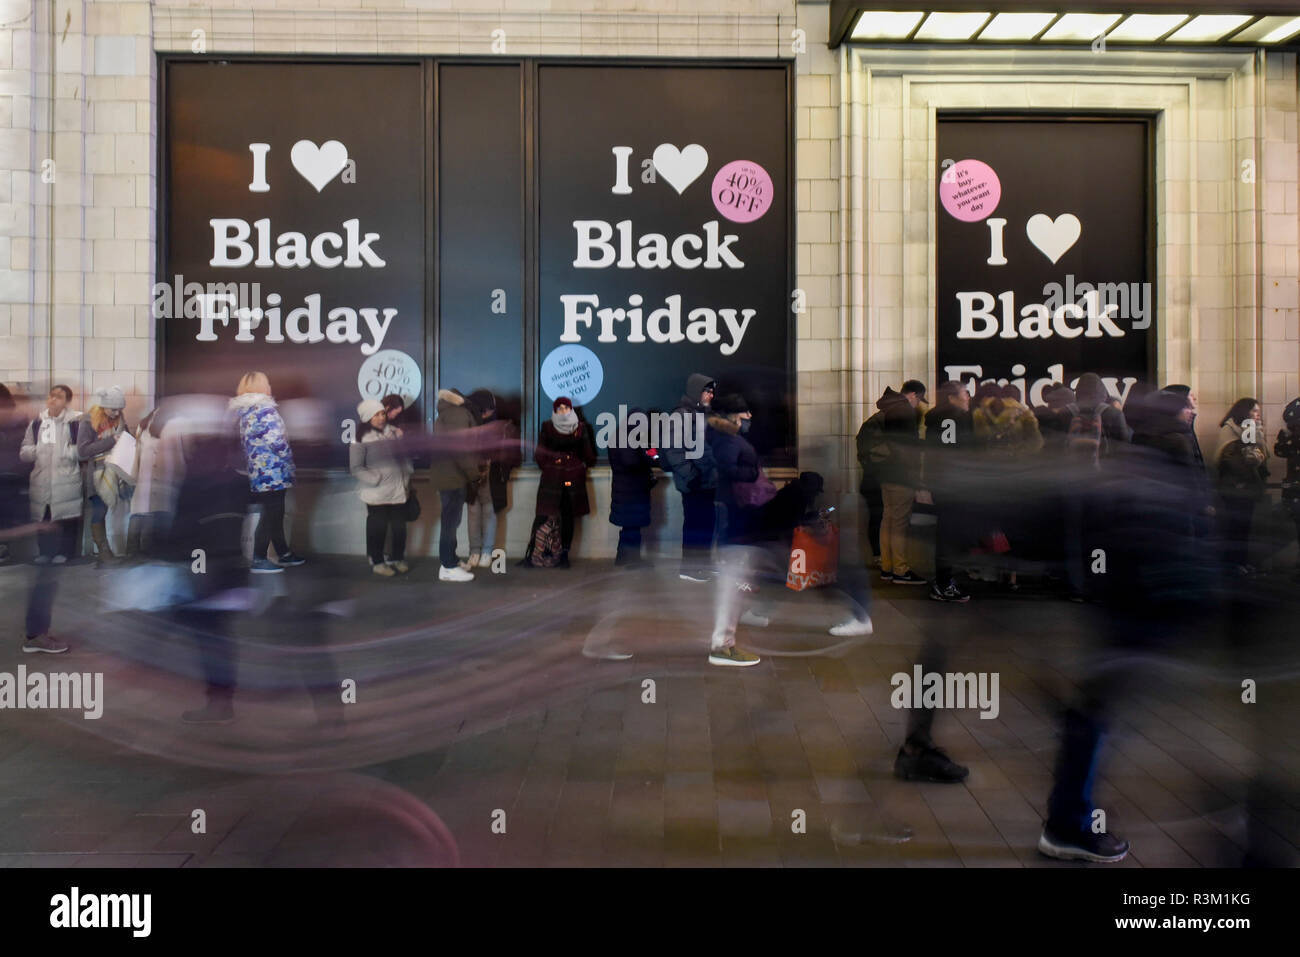 London, UK.  23 November 2018.  People queue into the night in front of advertising signs outside the UGG store near Piccadilly Circus on Black Friday.   Traditional retailers face increasing challenges to attract customers from their online competition. Credit: Stephen Chung / Alamy Live News Stock Photo